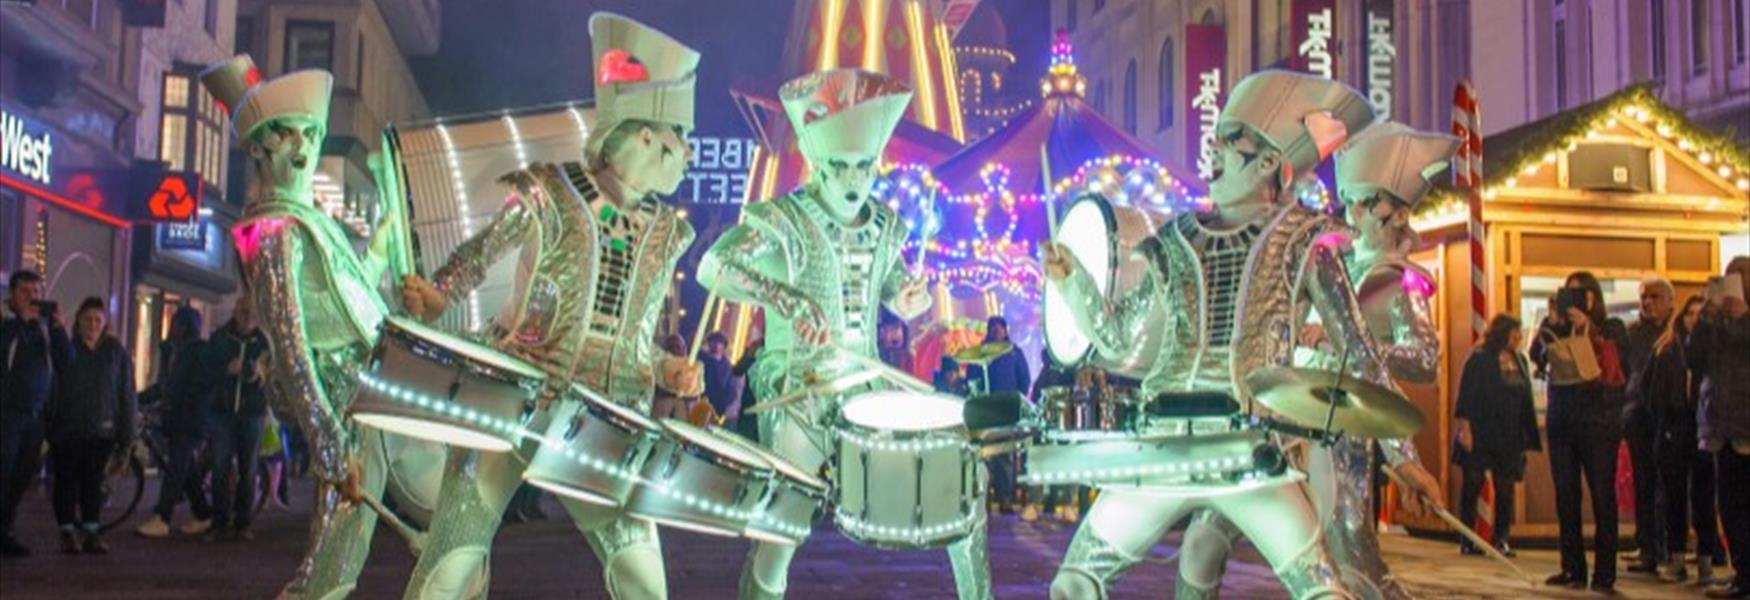 Spark! is a street theatre show that combines high-impact drumming with kaleidoscopic lighting design